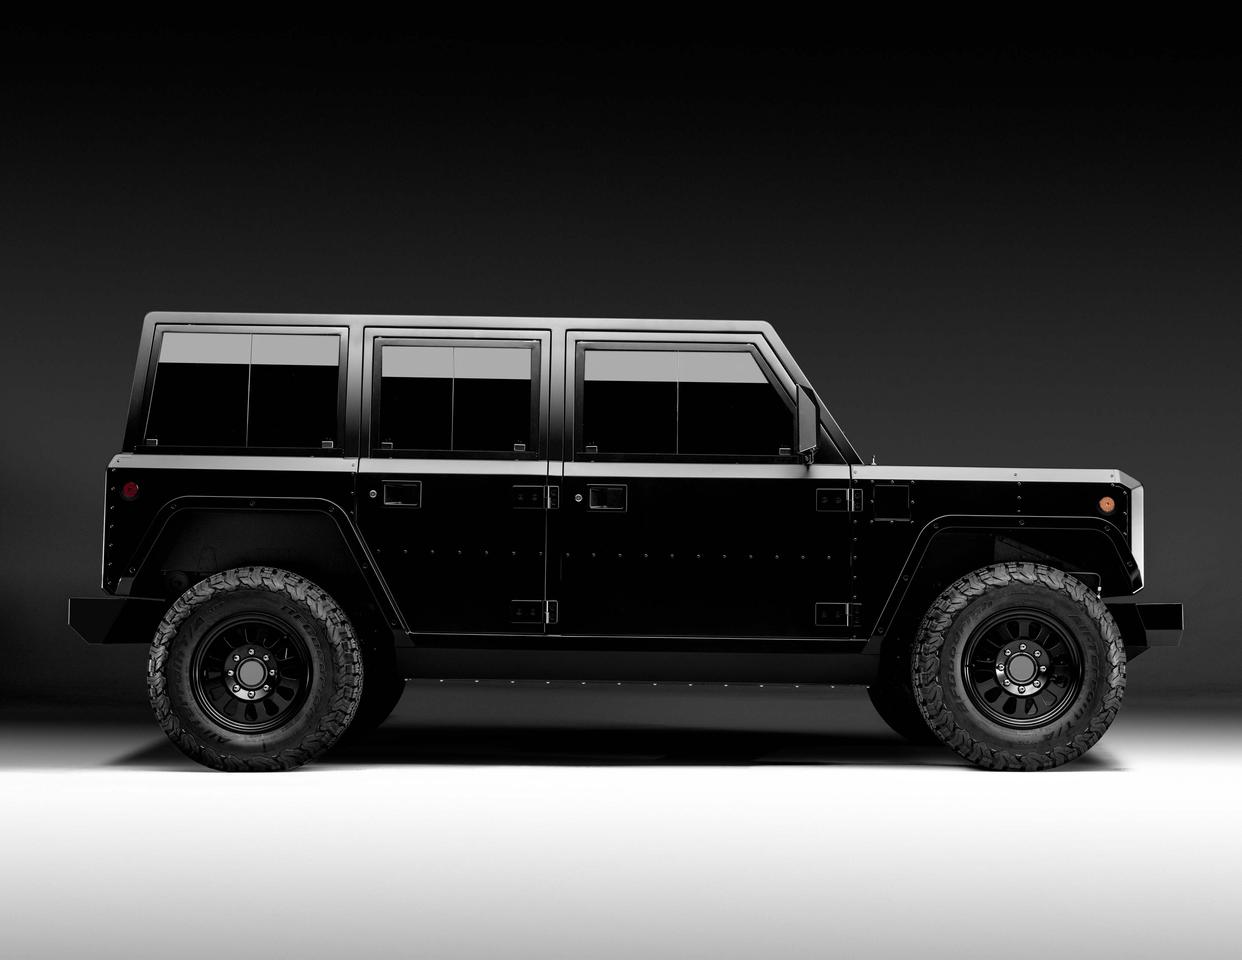 The B1 sport utility truck: built for serious hard work